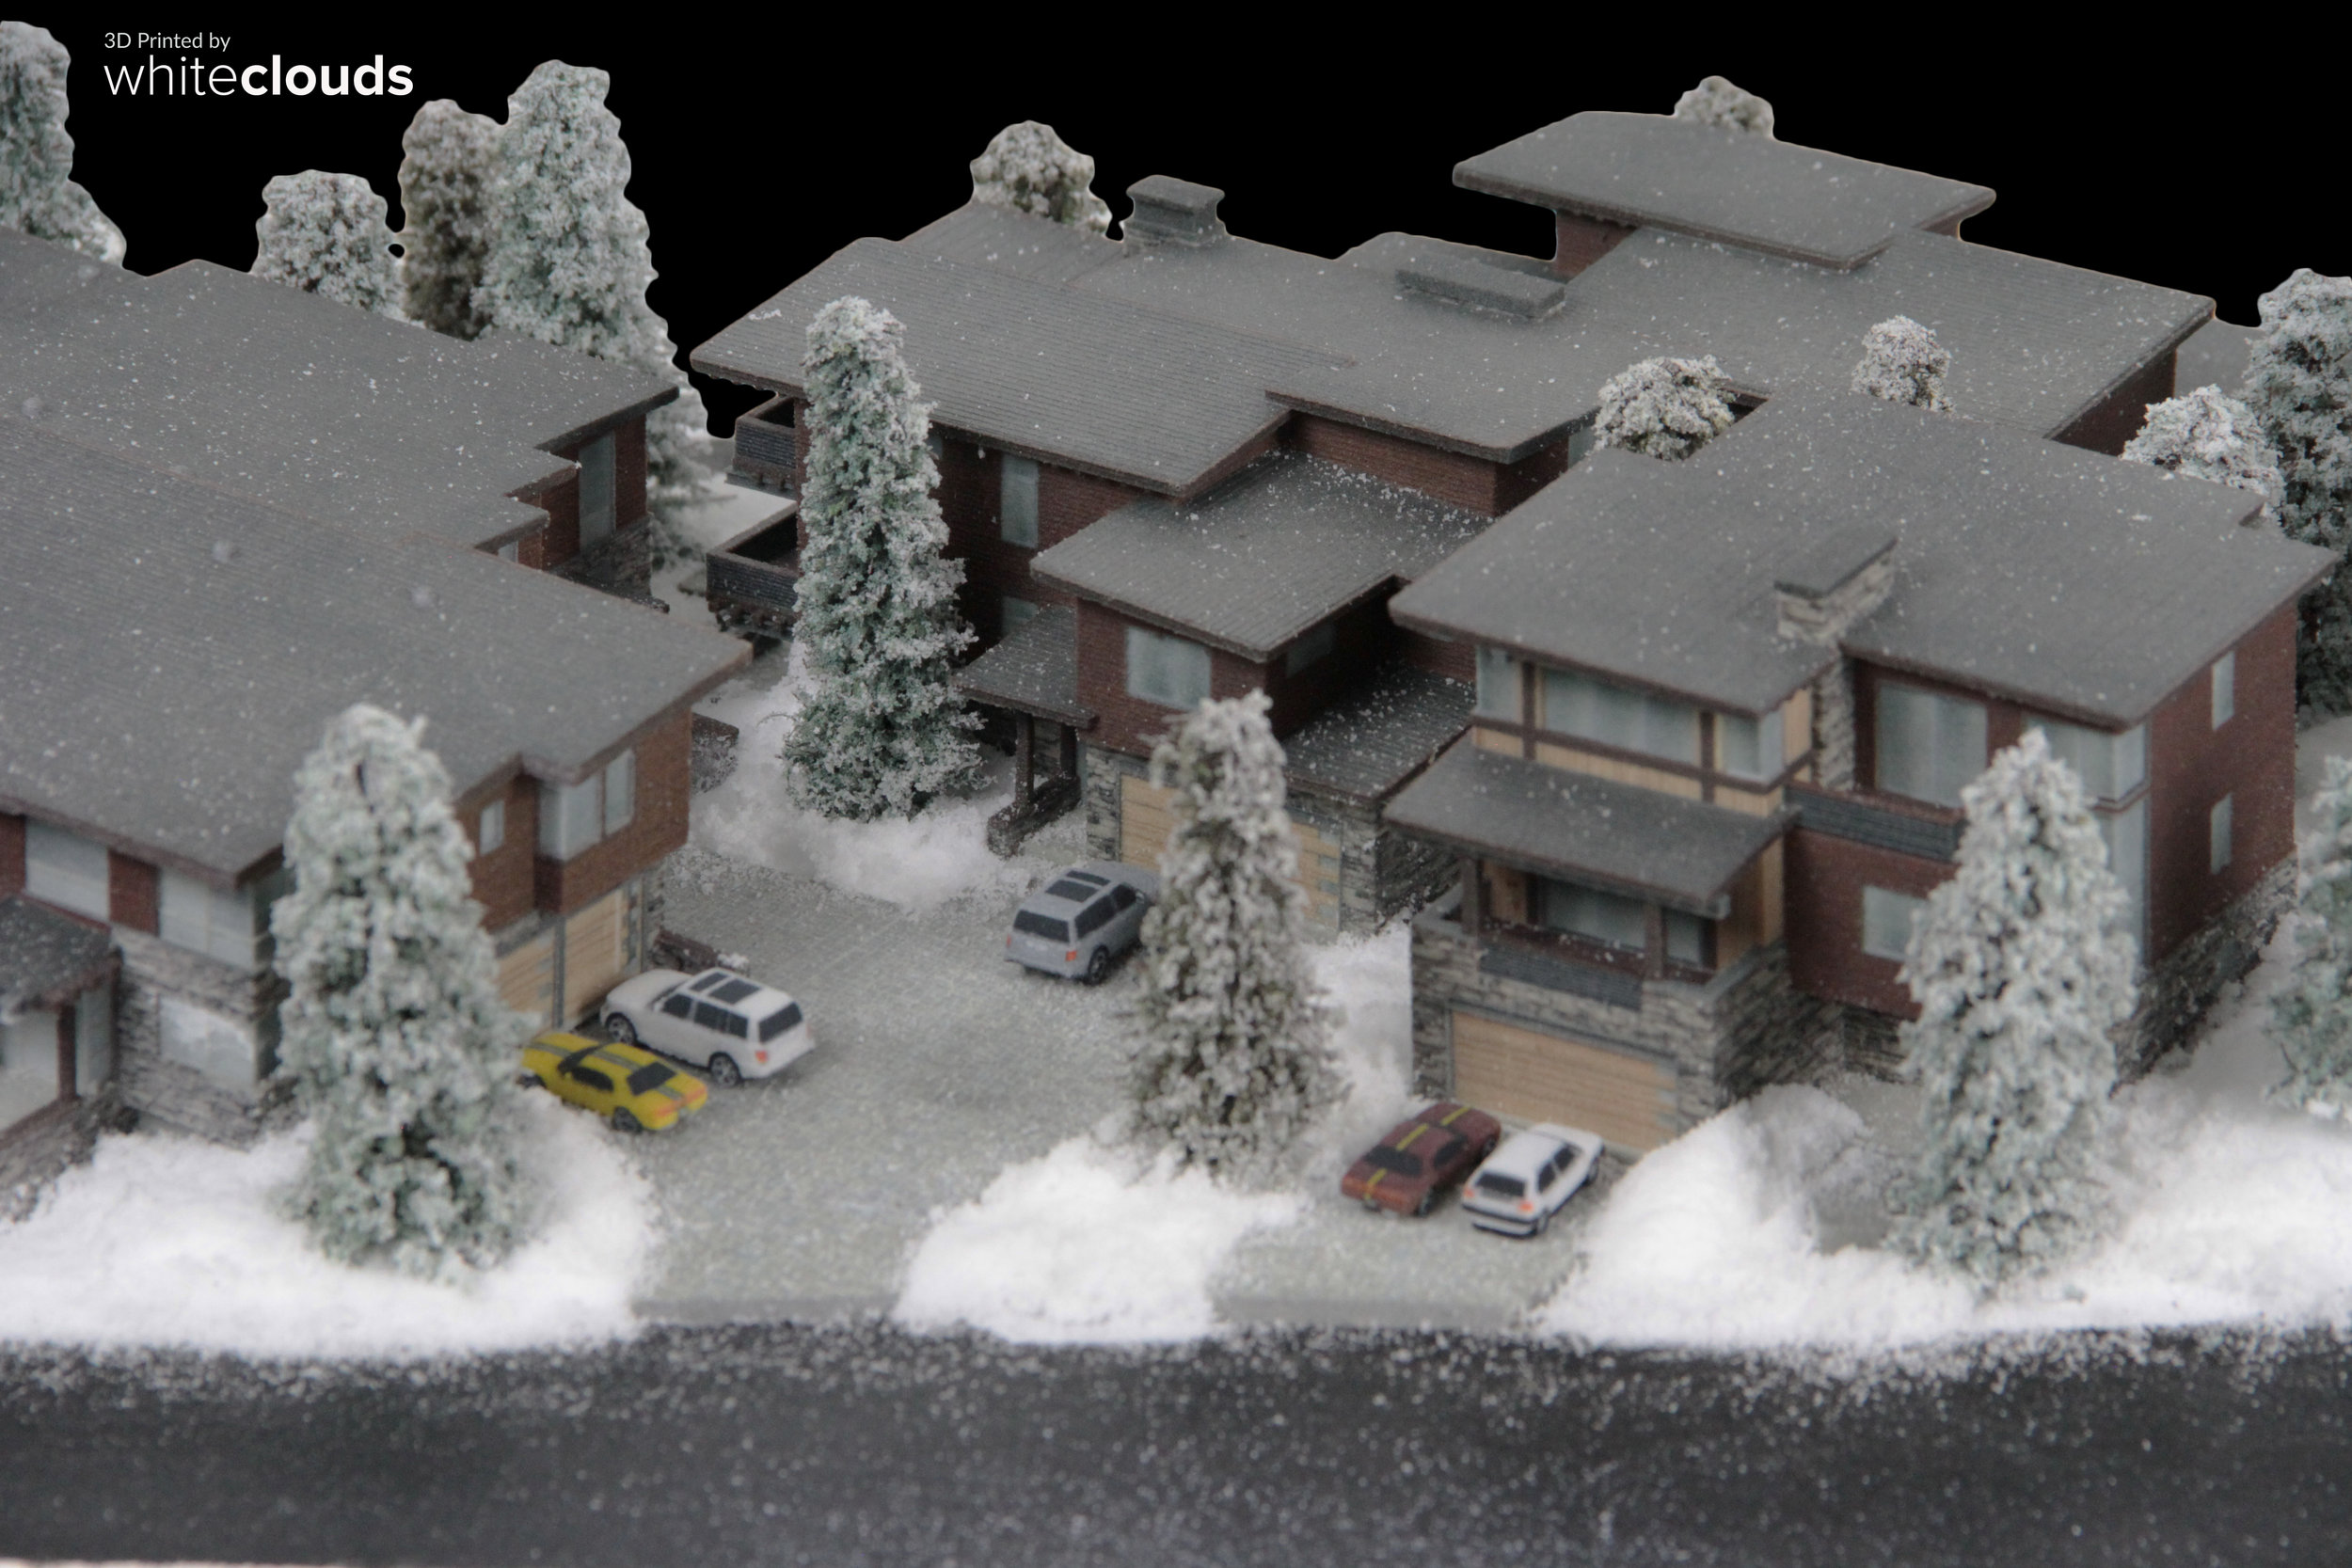 3D-Printed-WhiteClouds-Sunvalley-Architecture-Sunvalley-Website-3.JPG